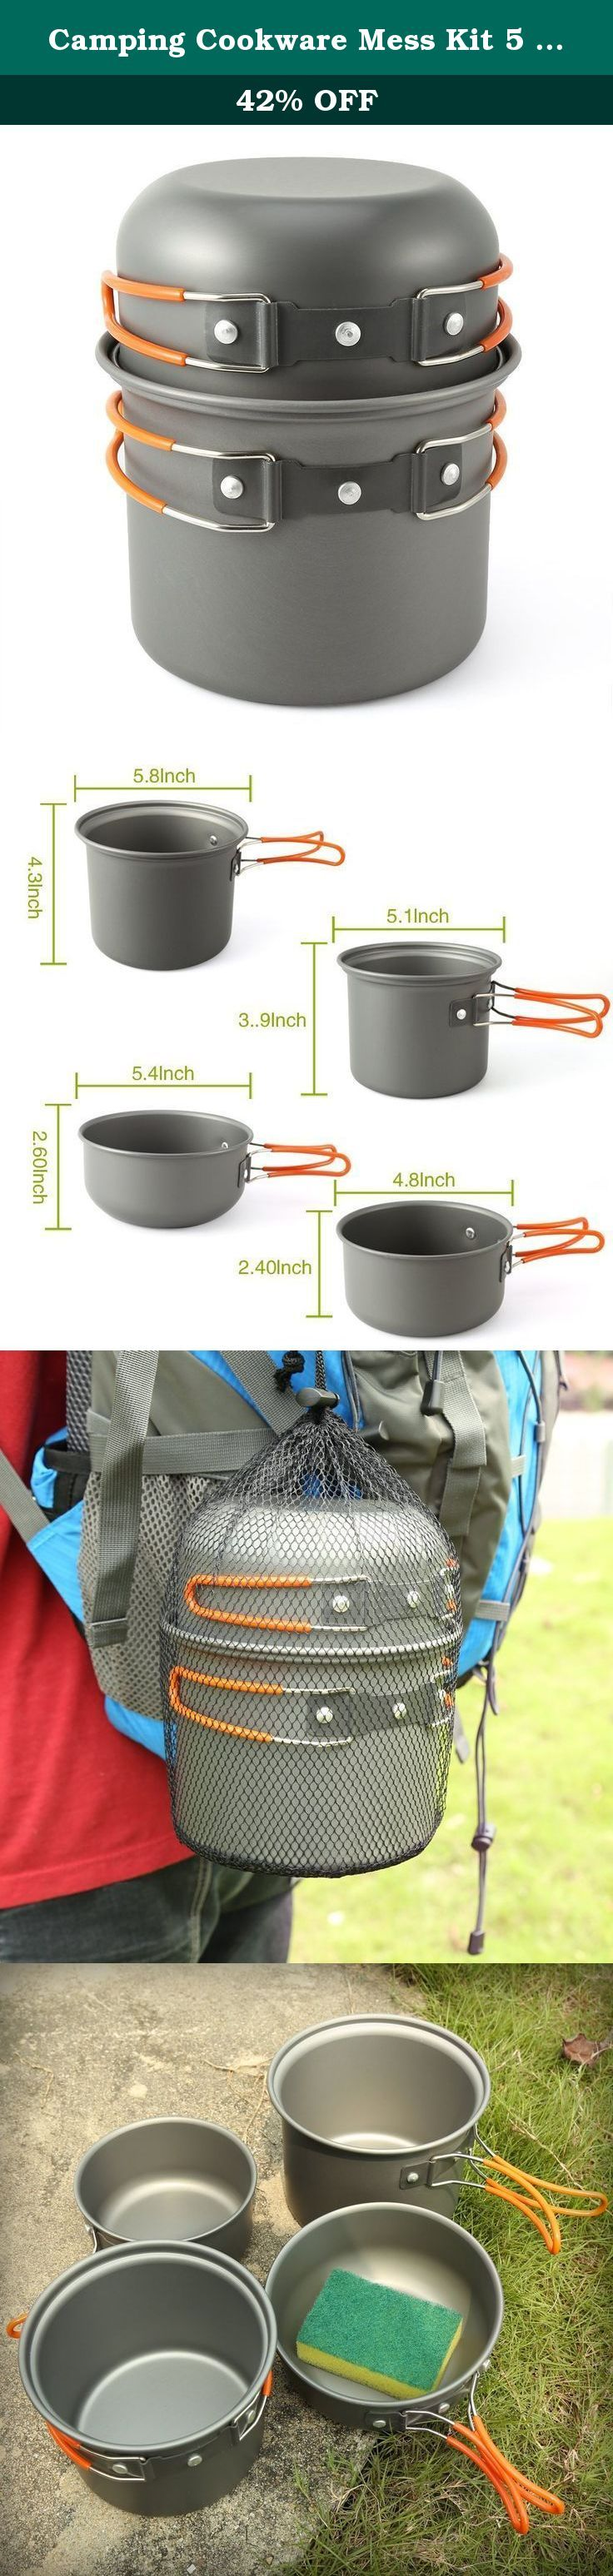 Camping Cookware Mess Kit 5 Piece, EZOWare Lightweight Aluminum Cookware Cooking Pan Pot Set For Outdoor Backpacking Camping Hiking Picnic. The EZOWare Camp Cookware Kit serves as a lightweight, efficient, and portable solution for cooking a light meal outdoors or boil safe drinking water for two to three people. The kit includes 2 pots and 2 smaller dual use pot/pans/lids so you can cook or heat up a variety of food including, canned food, soup, pasta, rice, and eggs. The set is perfect…